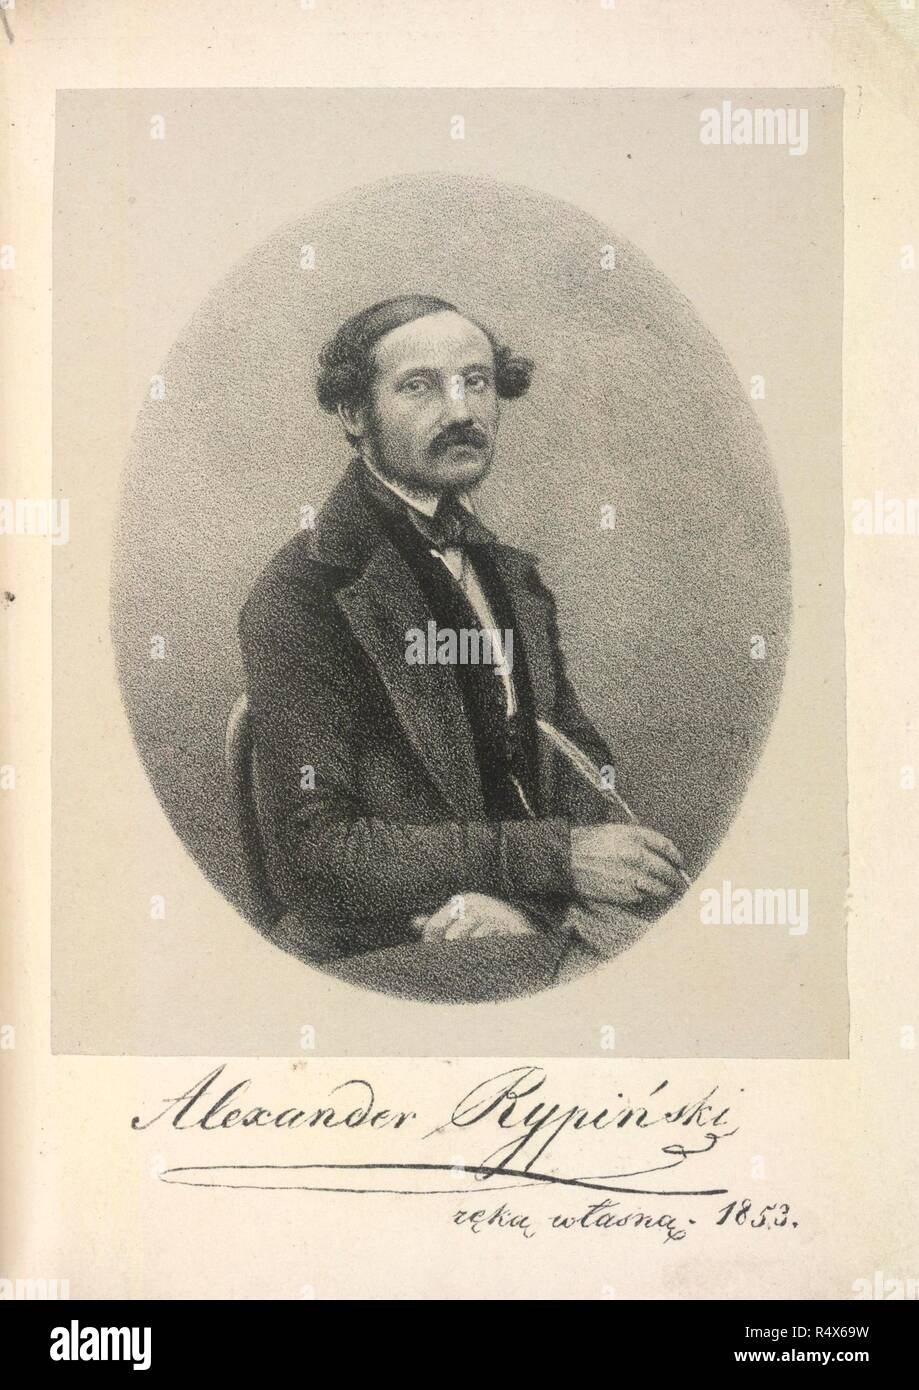 Alexander Rypinskii. Polish soldier and poet. Portrait. Lieutenant A. Rypinski's three short Polish poems on the last war with Russia. Translated into English by H. J. Daniel... London, 1856. Source: 11585.a.37. Language: English. Author: Radwan Rypinski, Aleksander. Stock Photo